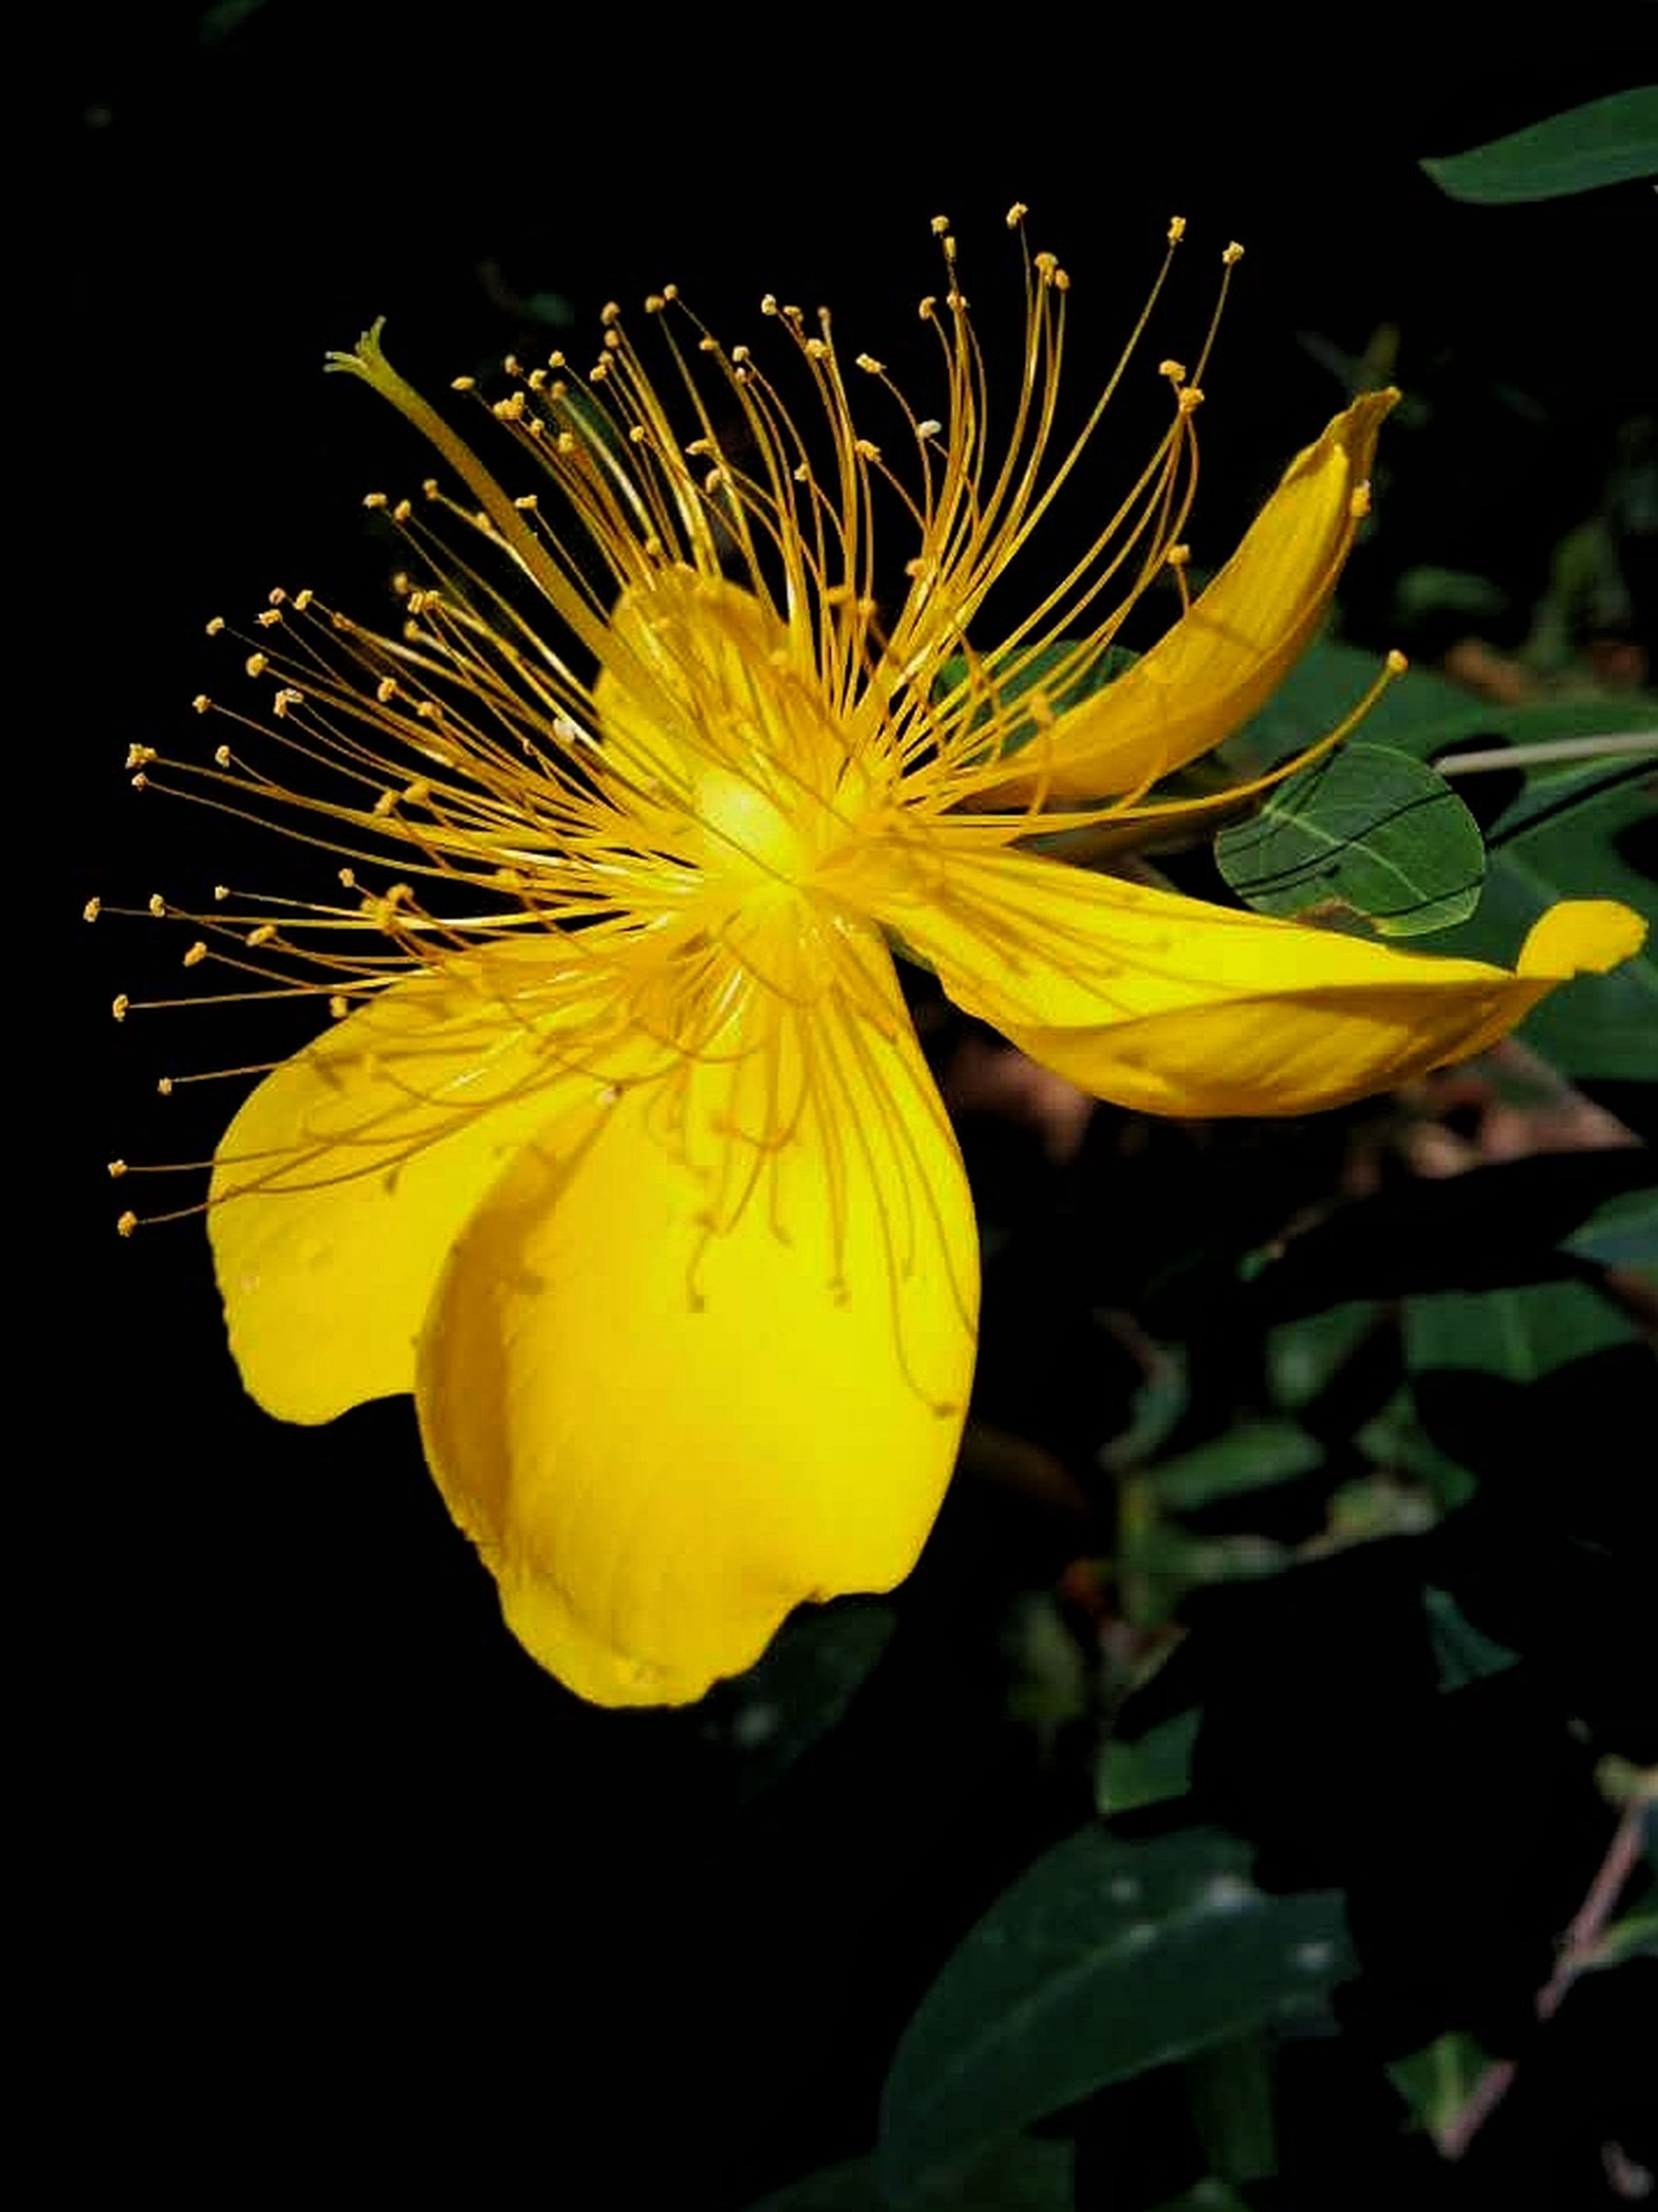 flower, petal, flower head, freshness, fragility, single flower, beauty in nature, growth, close-up, yellow, nature, blooming, pollen, plant, black background, studio shot, in bloom, stamen, night, blossom